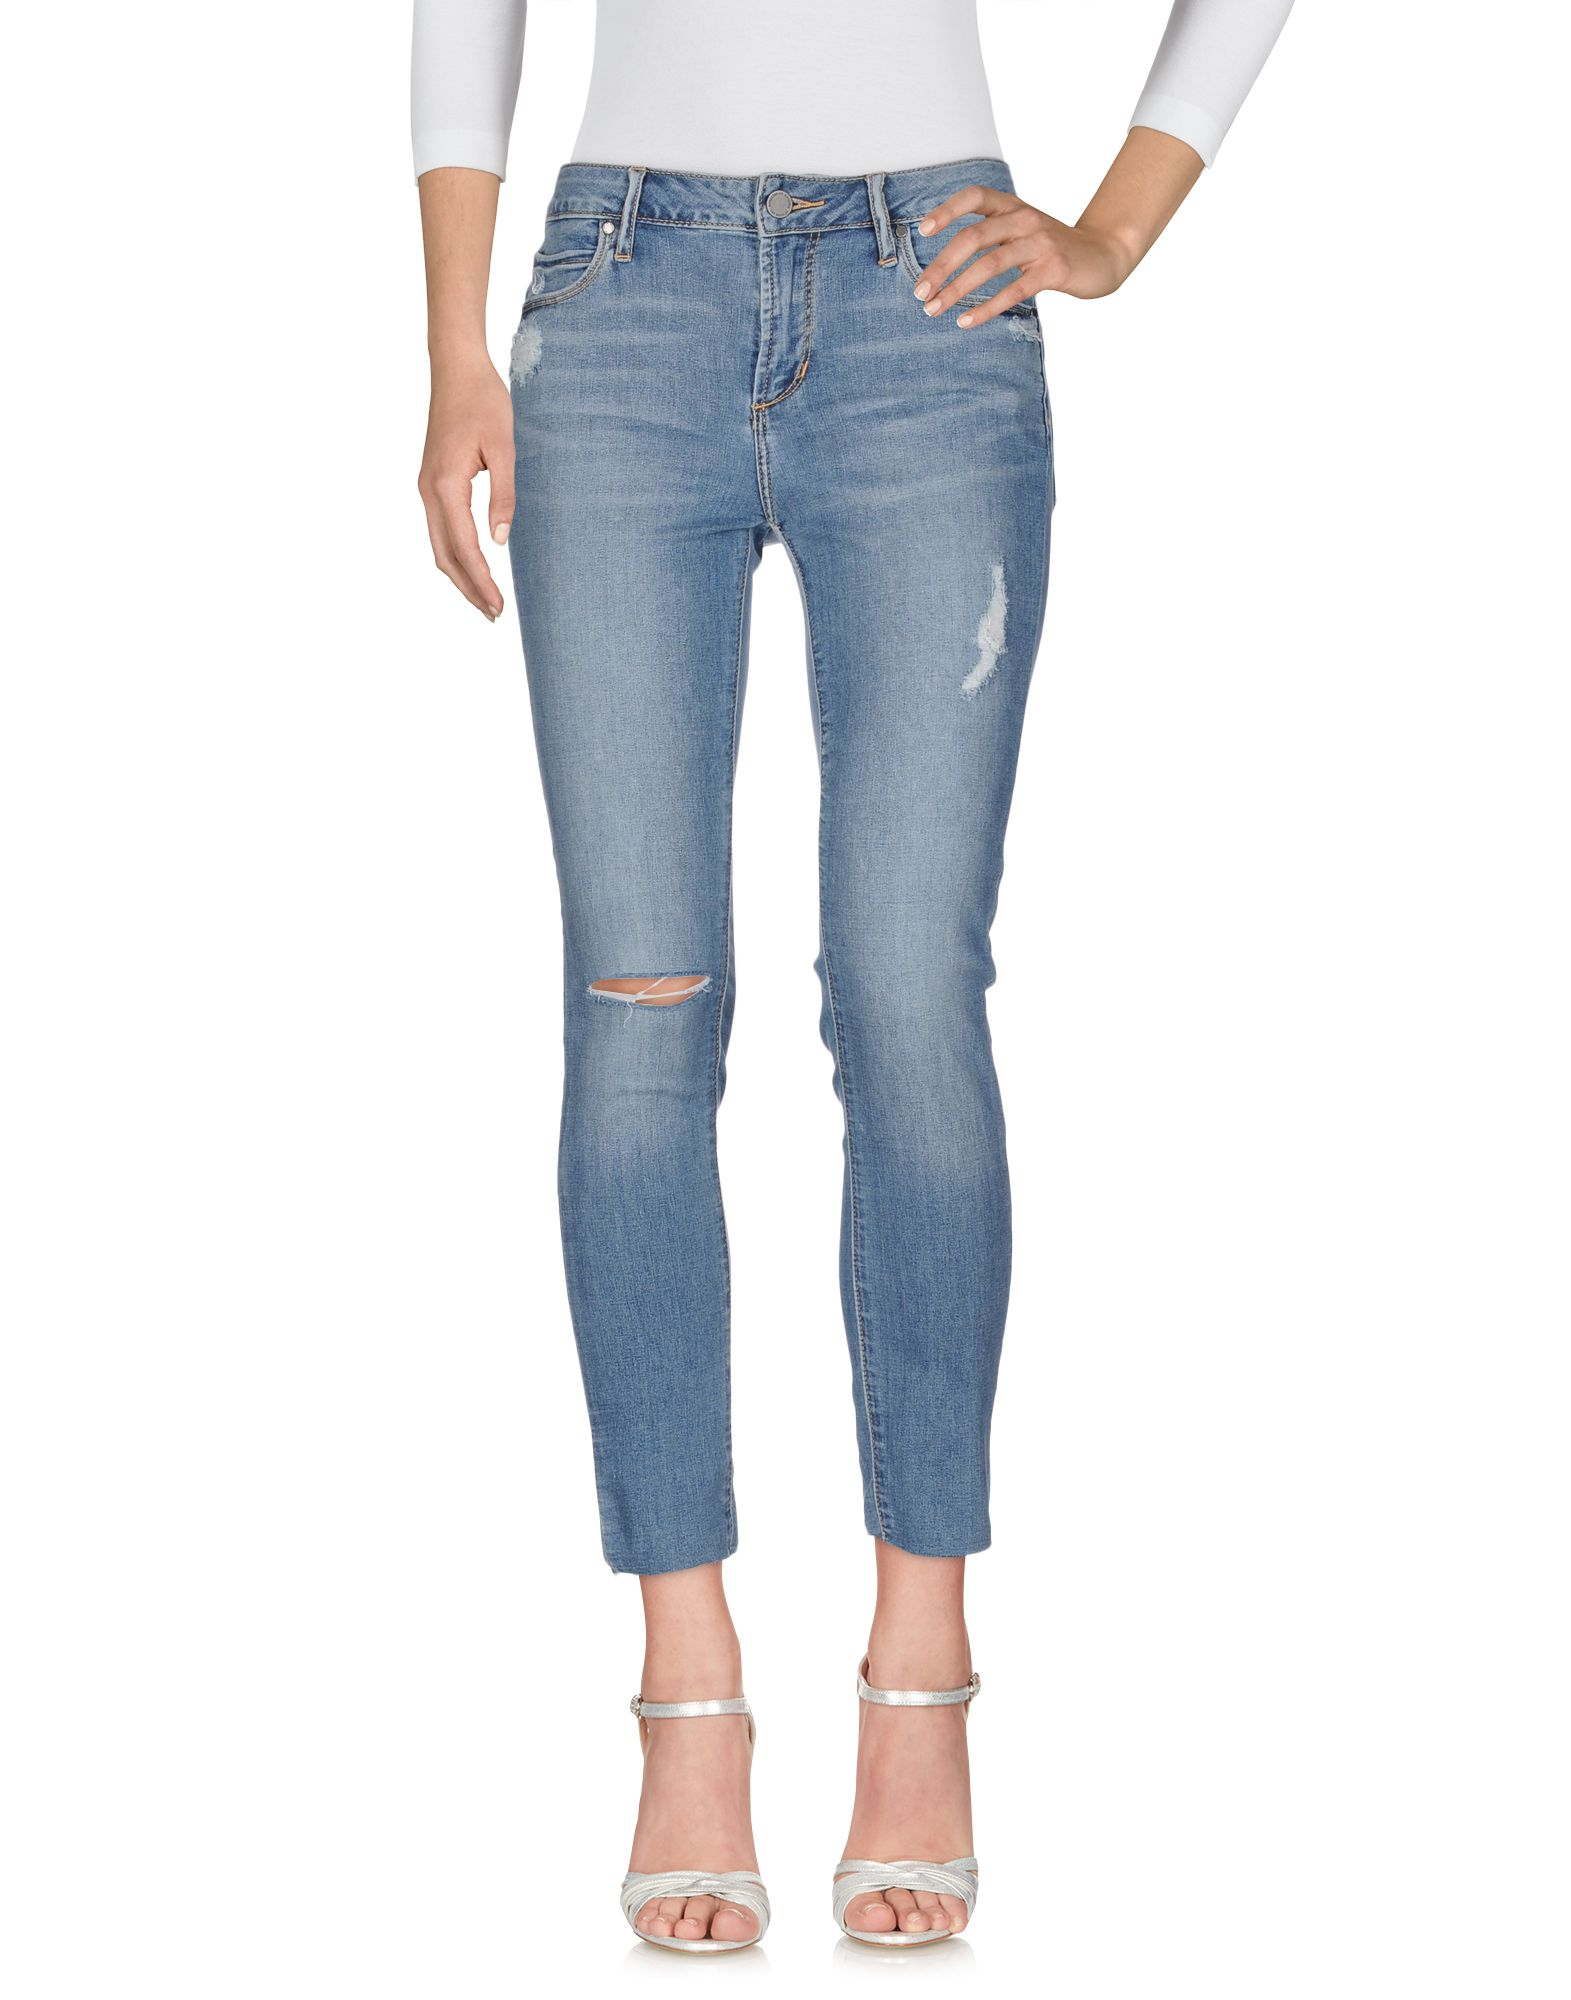 ARTICLES OF SOCIETY Jeans in Blue